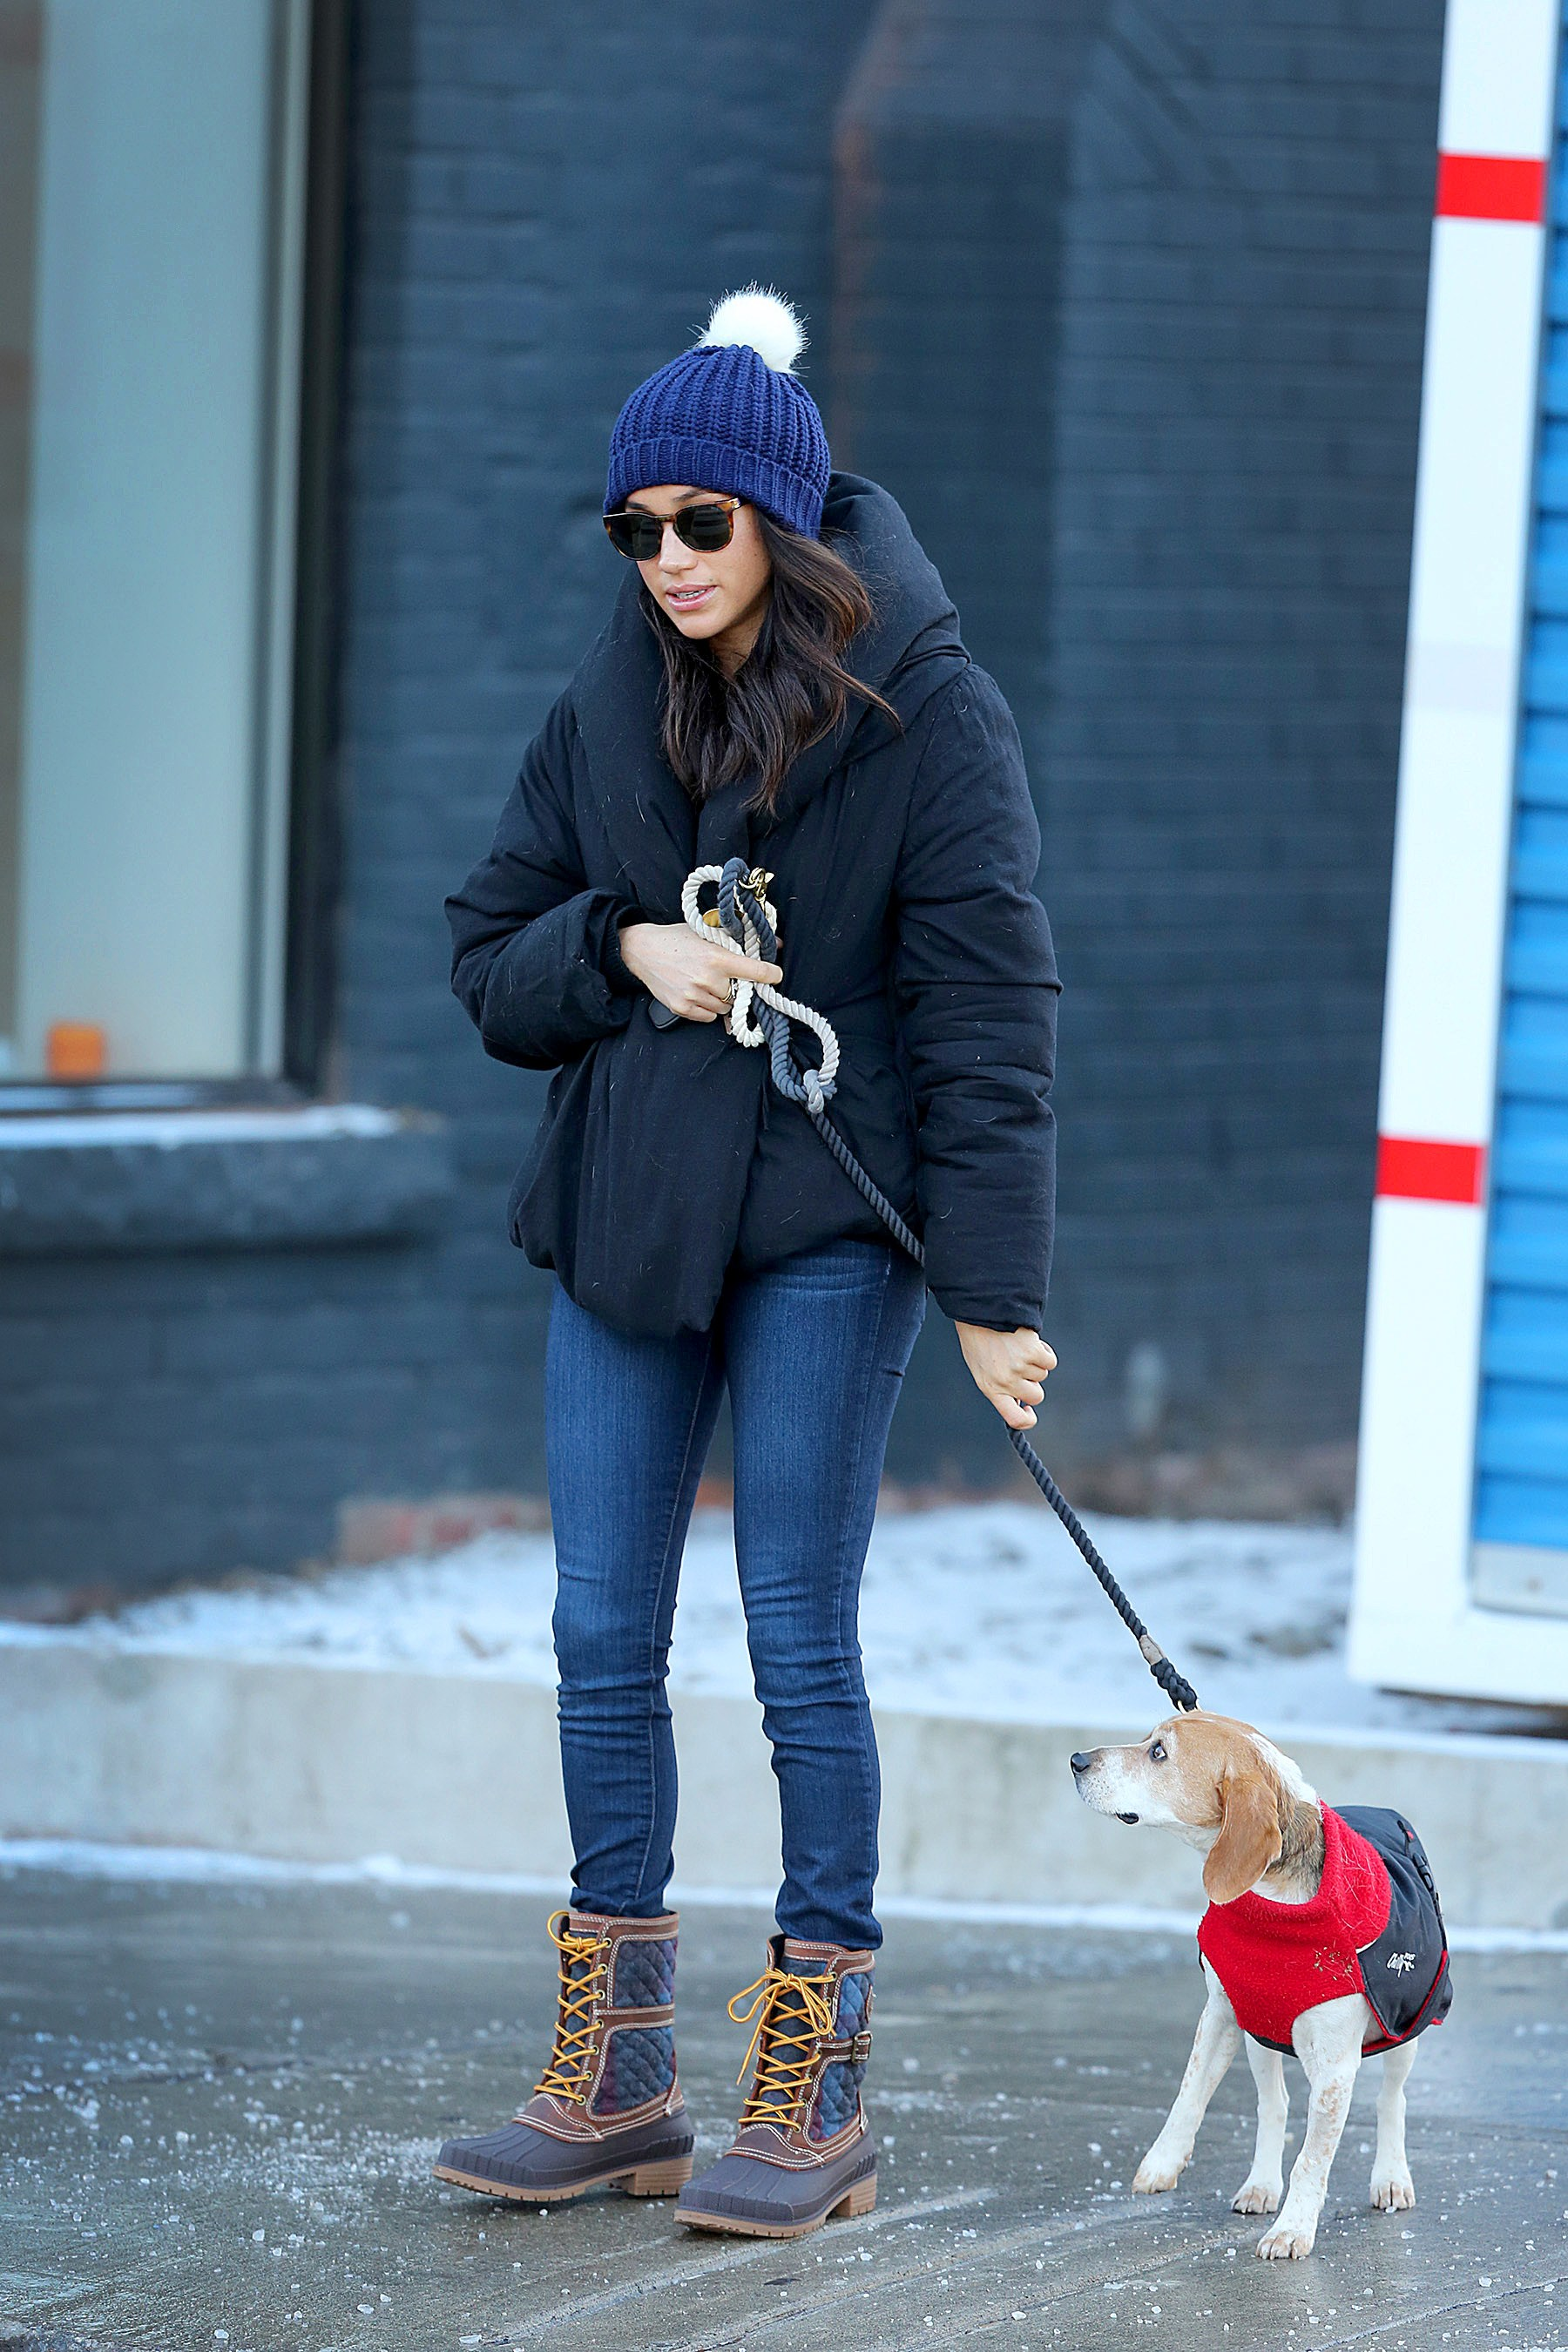 Tig Throwback Thursdays Meghan Markle S Winter Style Tips